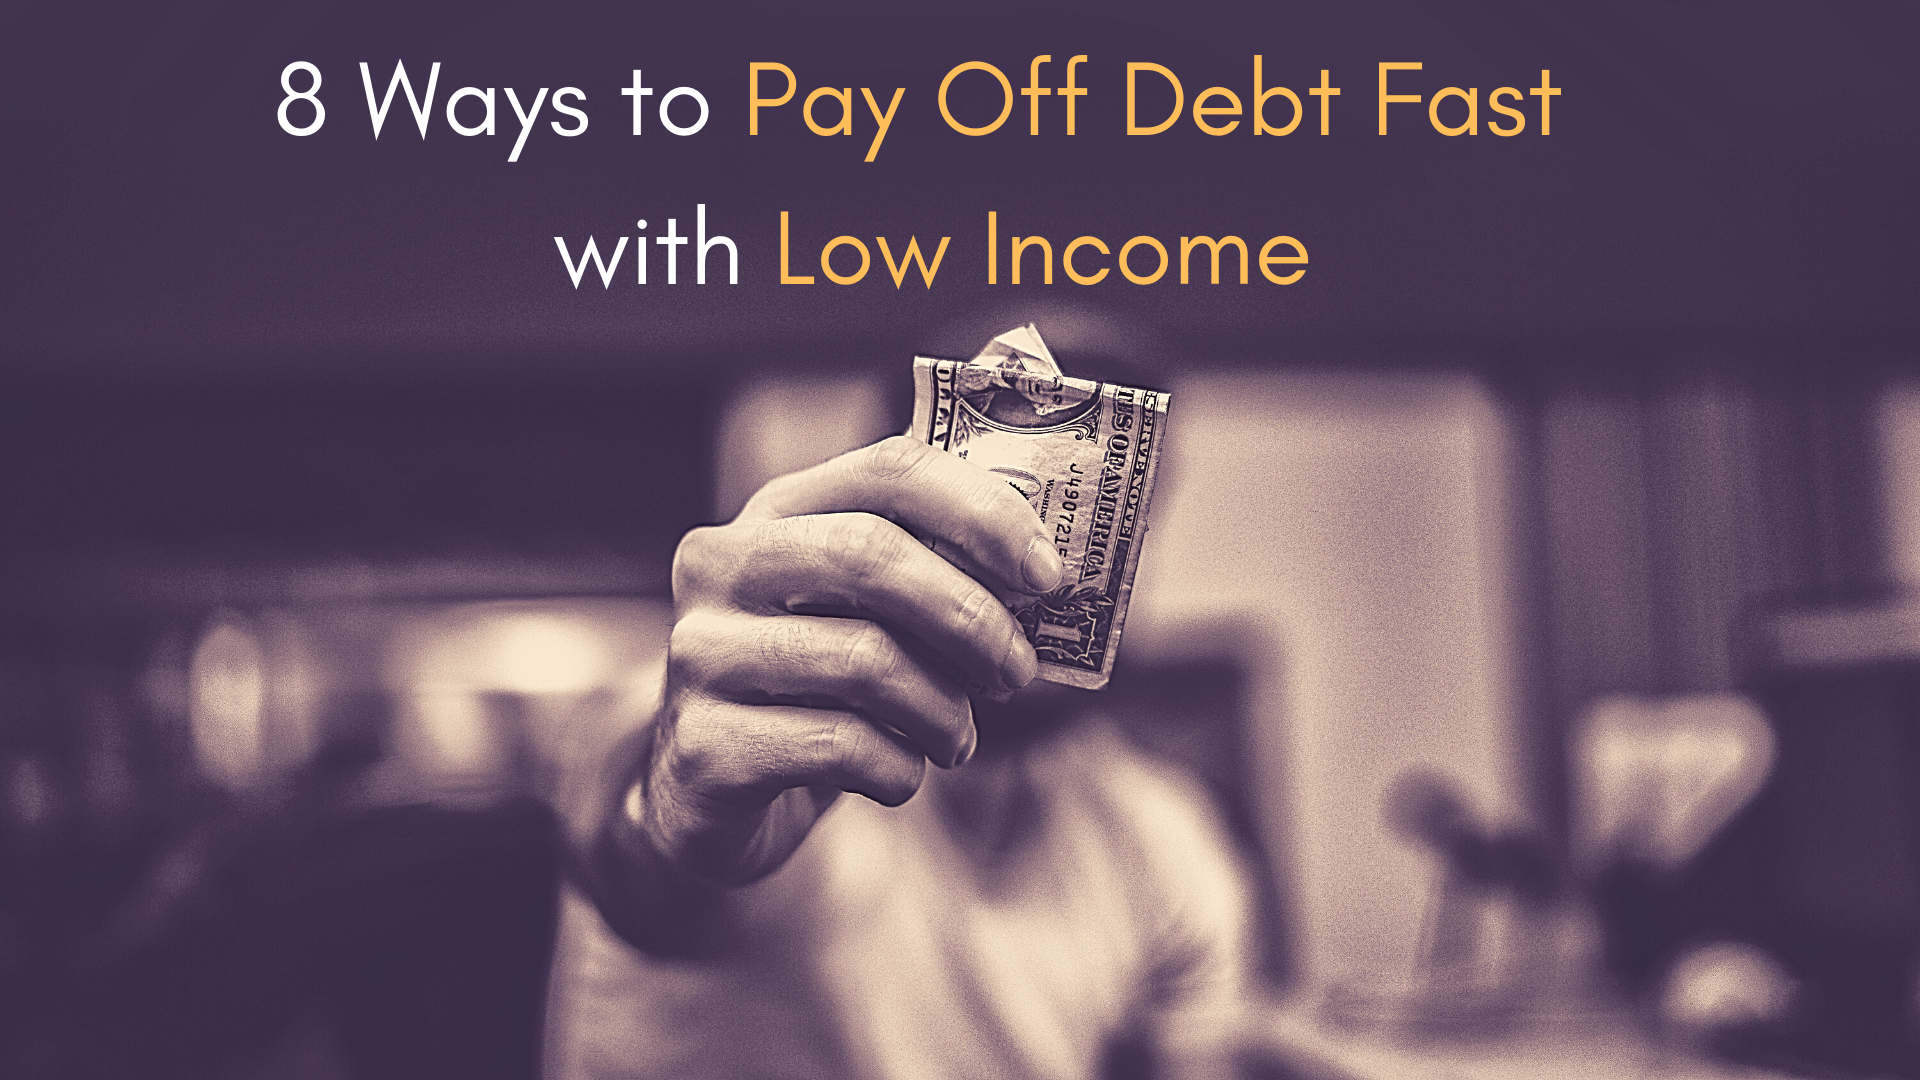 8 Ways to Pay Off Debt Fast with Low Income